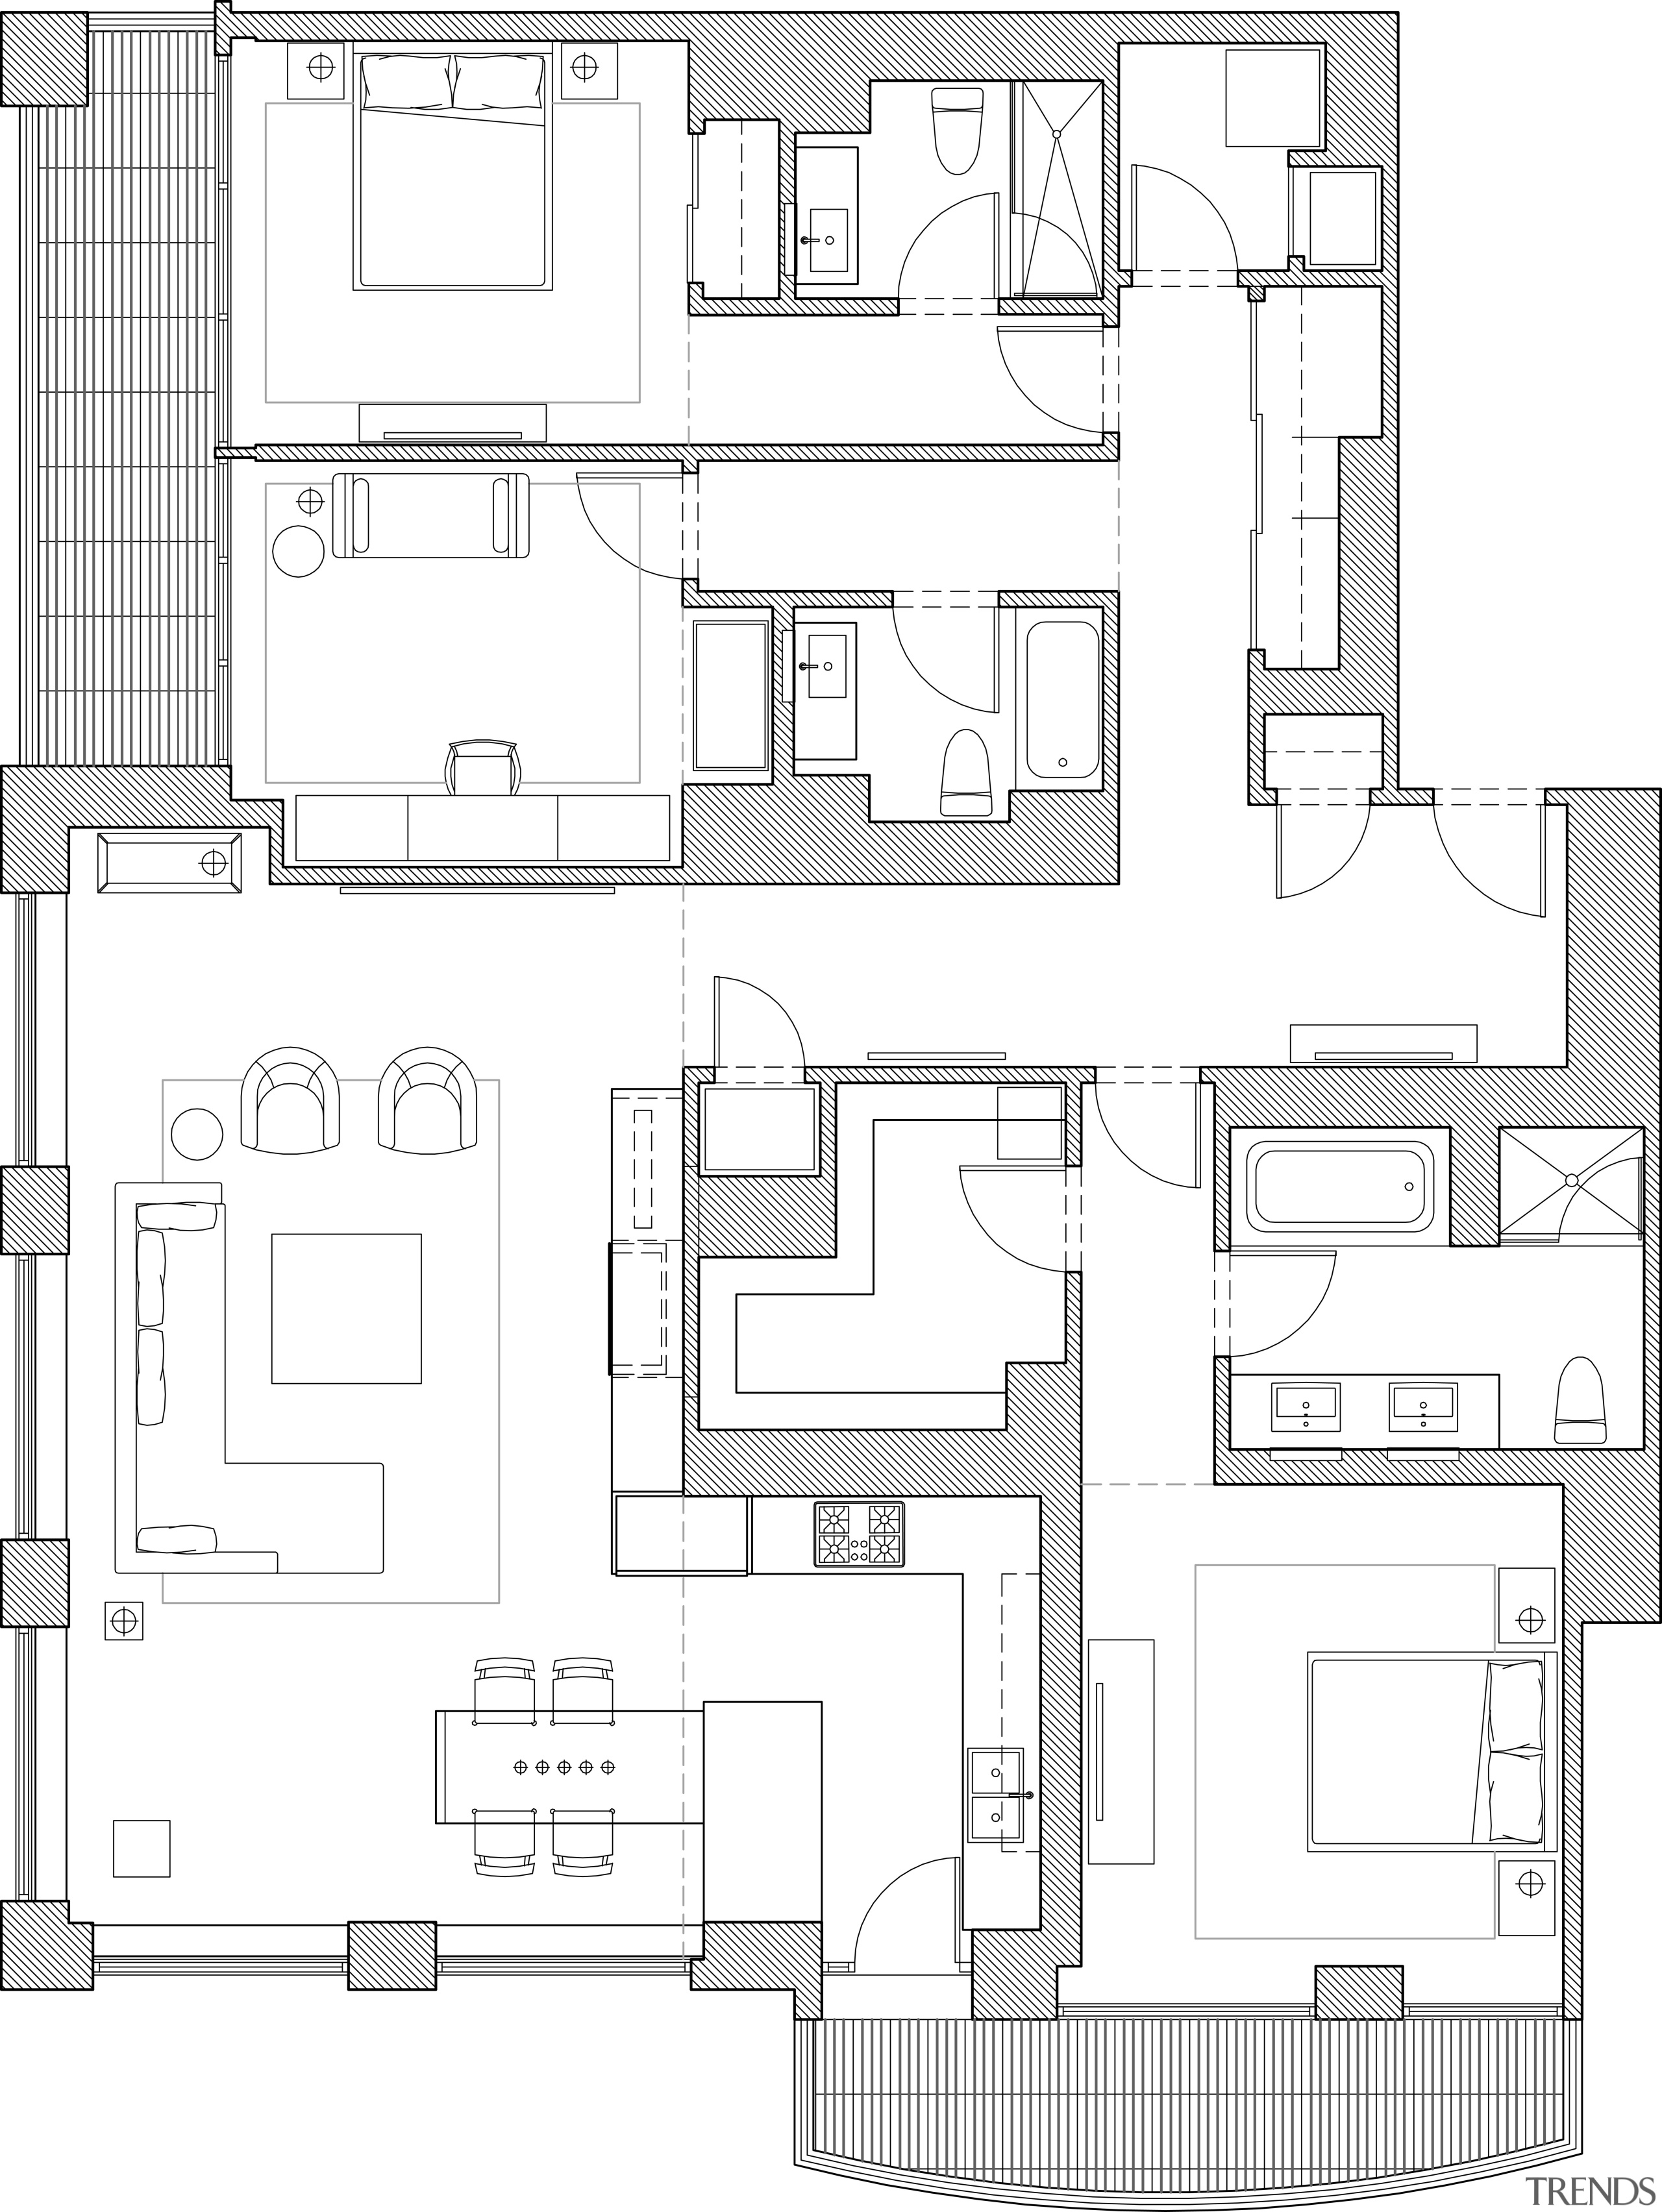 View of kitchen designed by Massey Hoffman Architects architecture, area, artwork, black and white, design, drawing, elevation, facade, floor plan, home, line, line art, plan, product, product design, residential area, square, structure, technical drawing, white